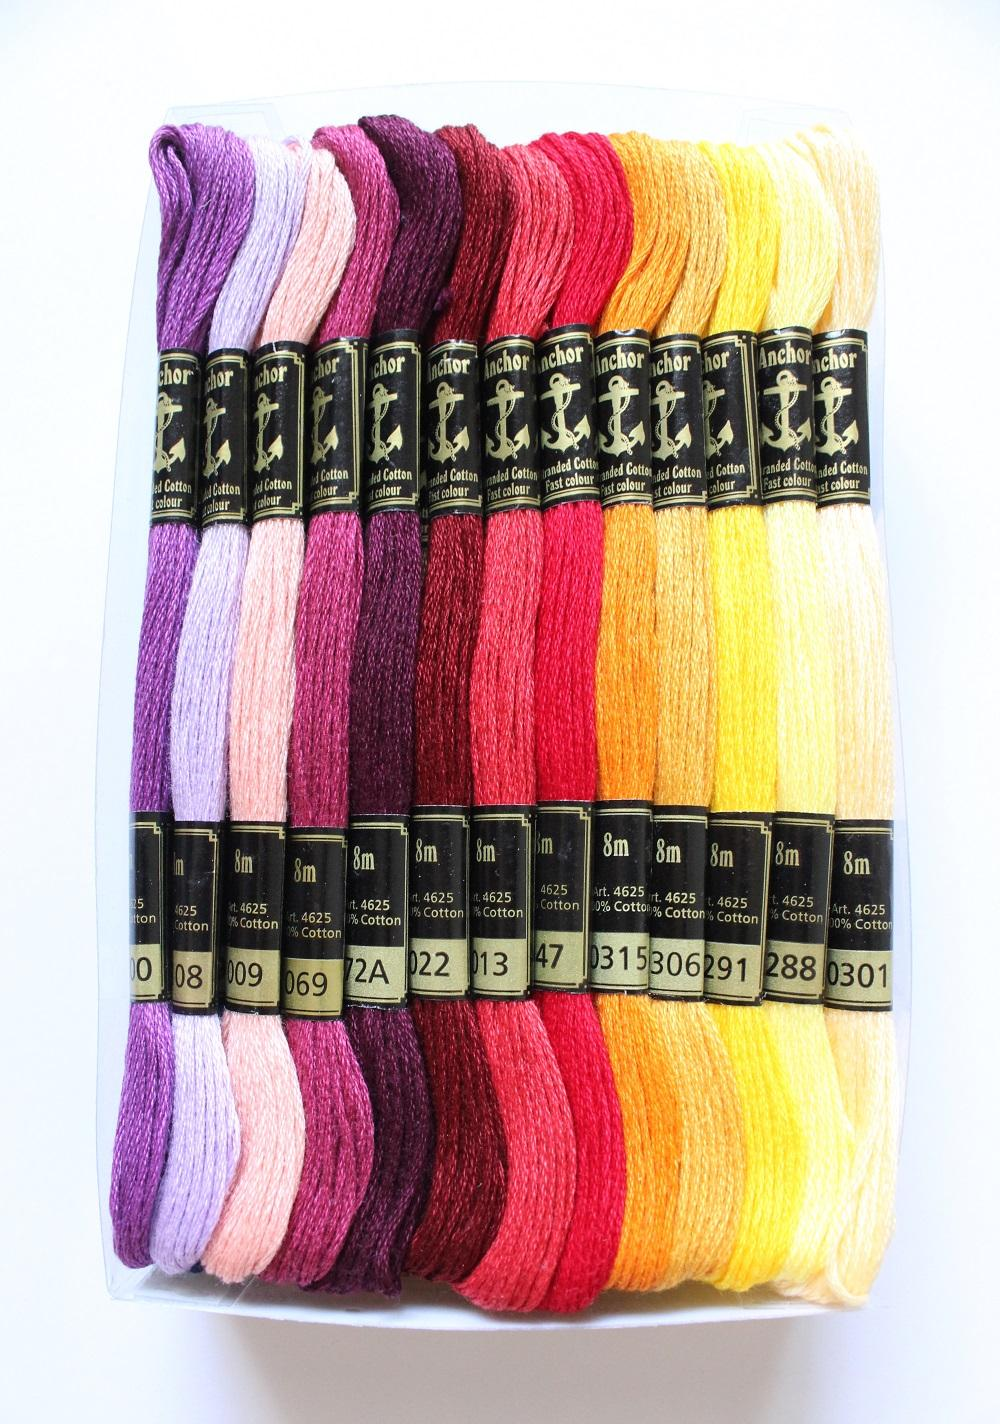 Anchor Stranded Cotton 8m Colours 341-367 100/% Cotton Embroidery Thread Skeins